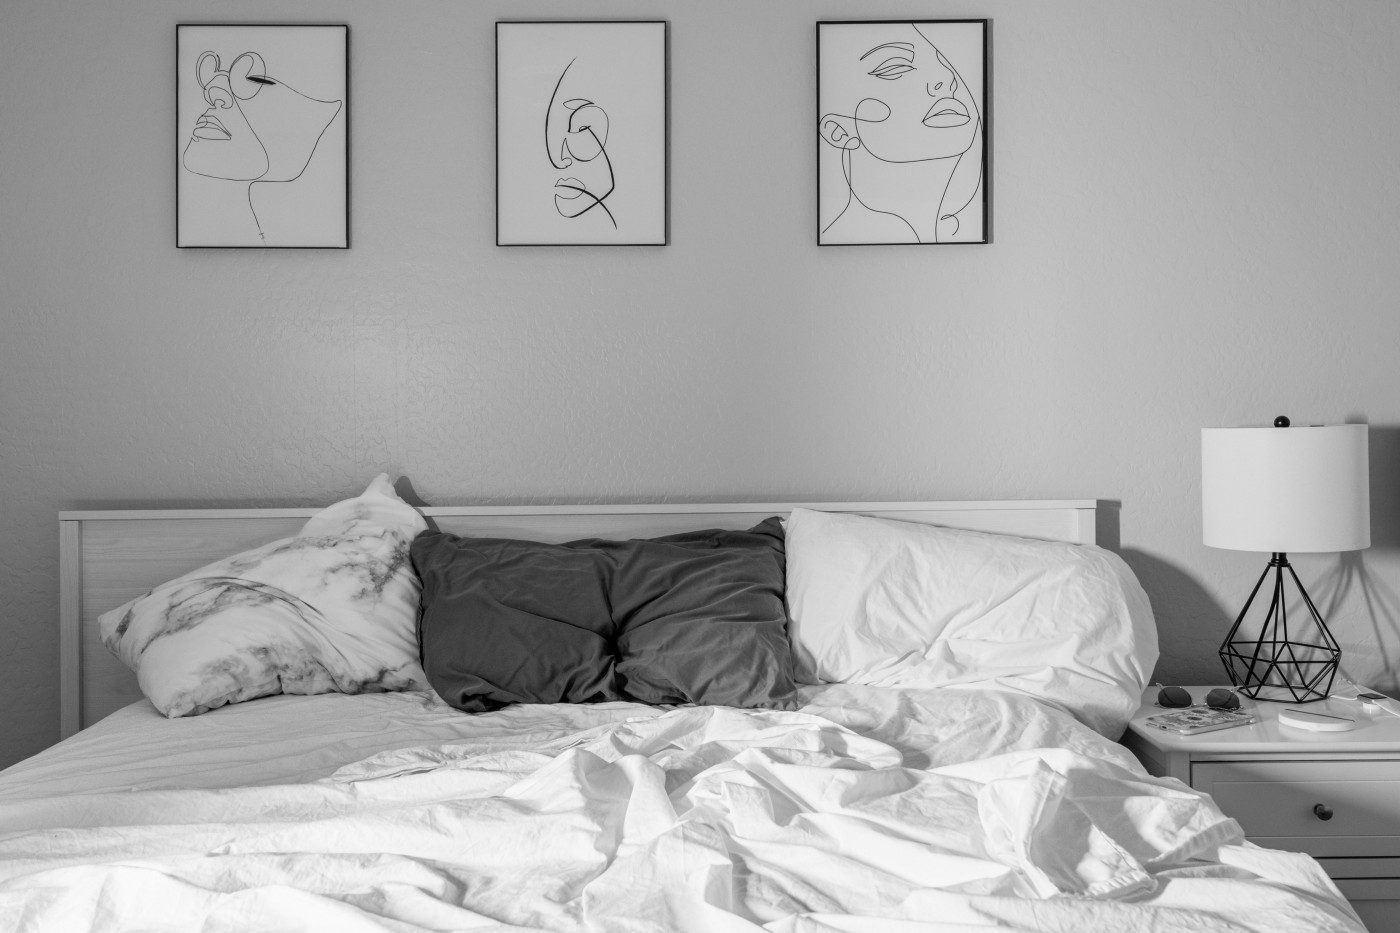 Rumpled cotton sheets on a queen sized bed with three different pillows at the head. Monochrome palette, gray and white.